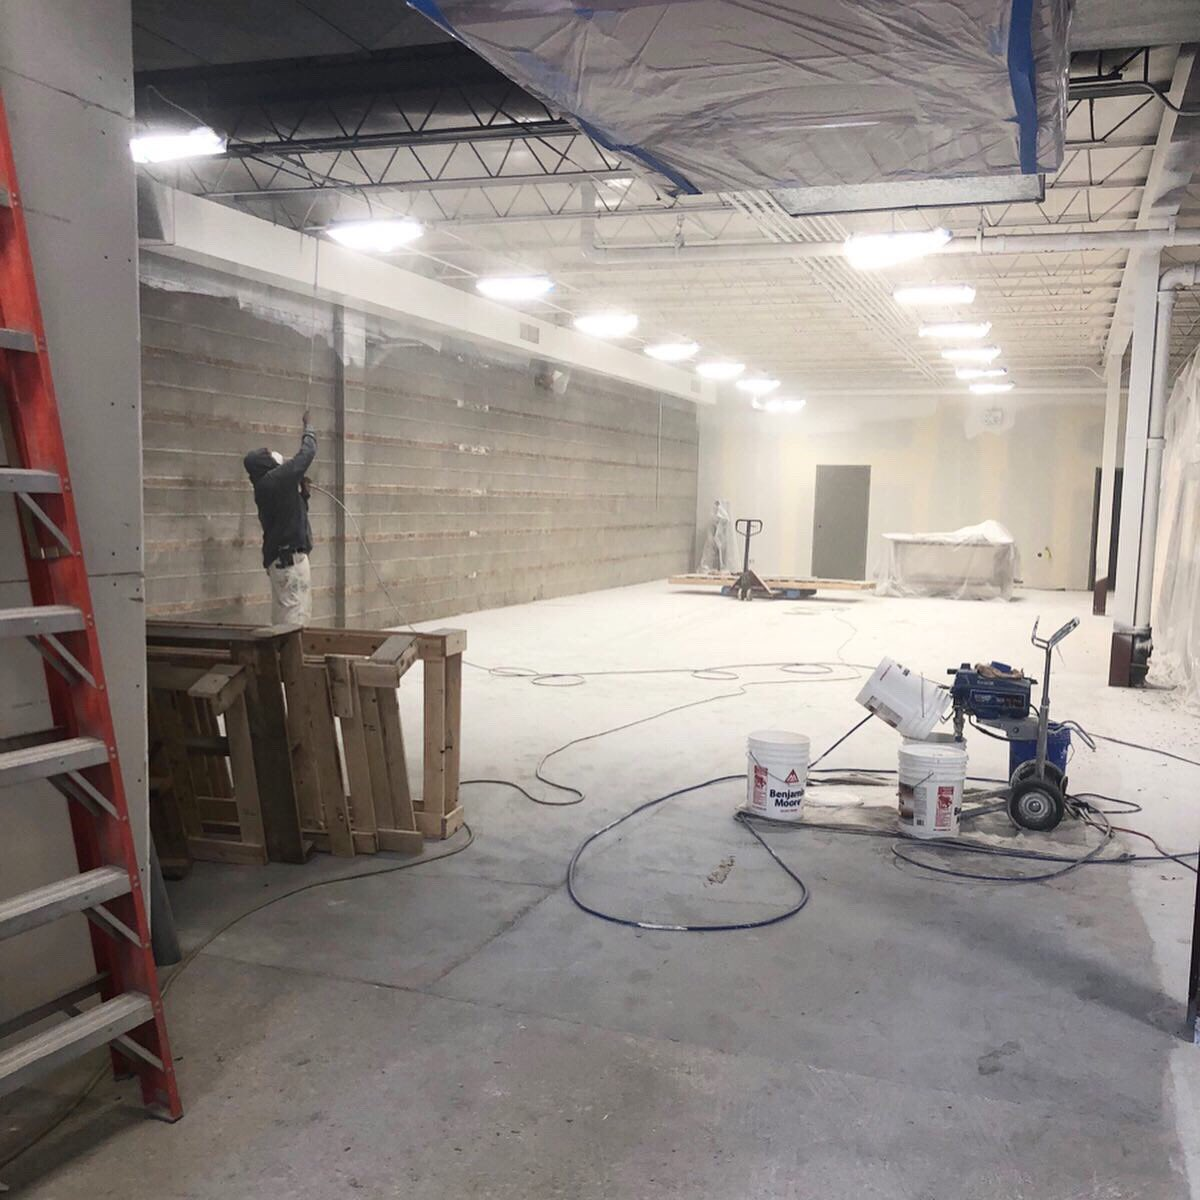 #ProgressPic while painting our new warehouse, located at 5151 N. Ravenswood! A few fast facts:  10,000 sq. ft.  Cooler and freezer are 10x the size of the ones at our Sheridan site  Space for 188 pallets for more bulk donations <br>http://pic.twitter.com/rZQ2er4NVu